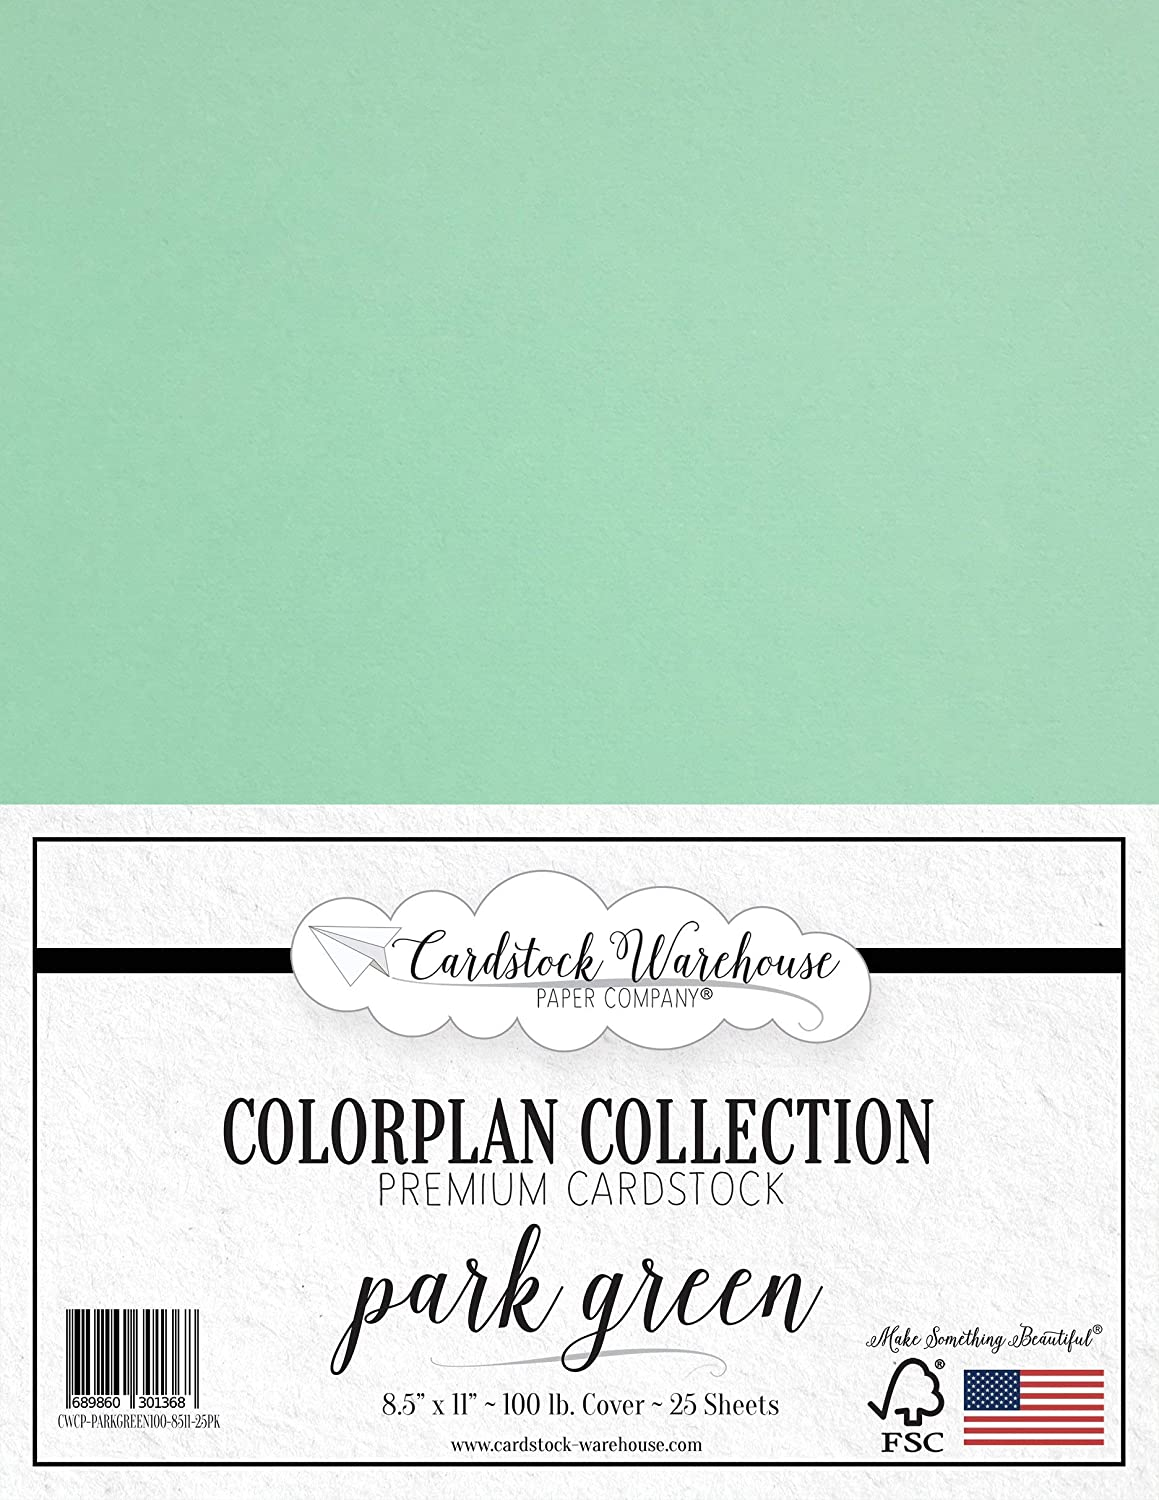 Park Green Cardstock Paper - 8.5 x 11 inch Premium 100 lb. Cover - 25 Sheets from Cardstock Warehouse